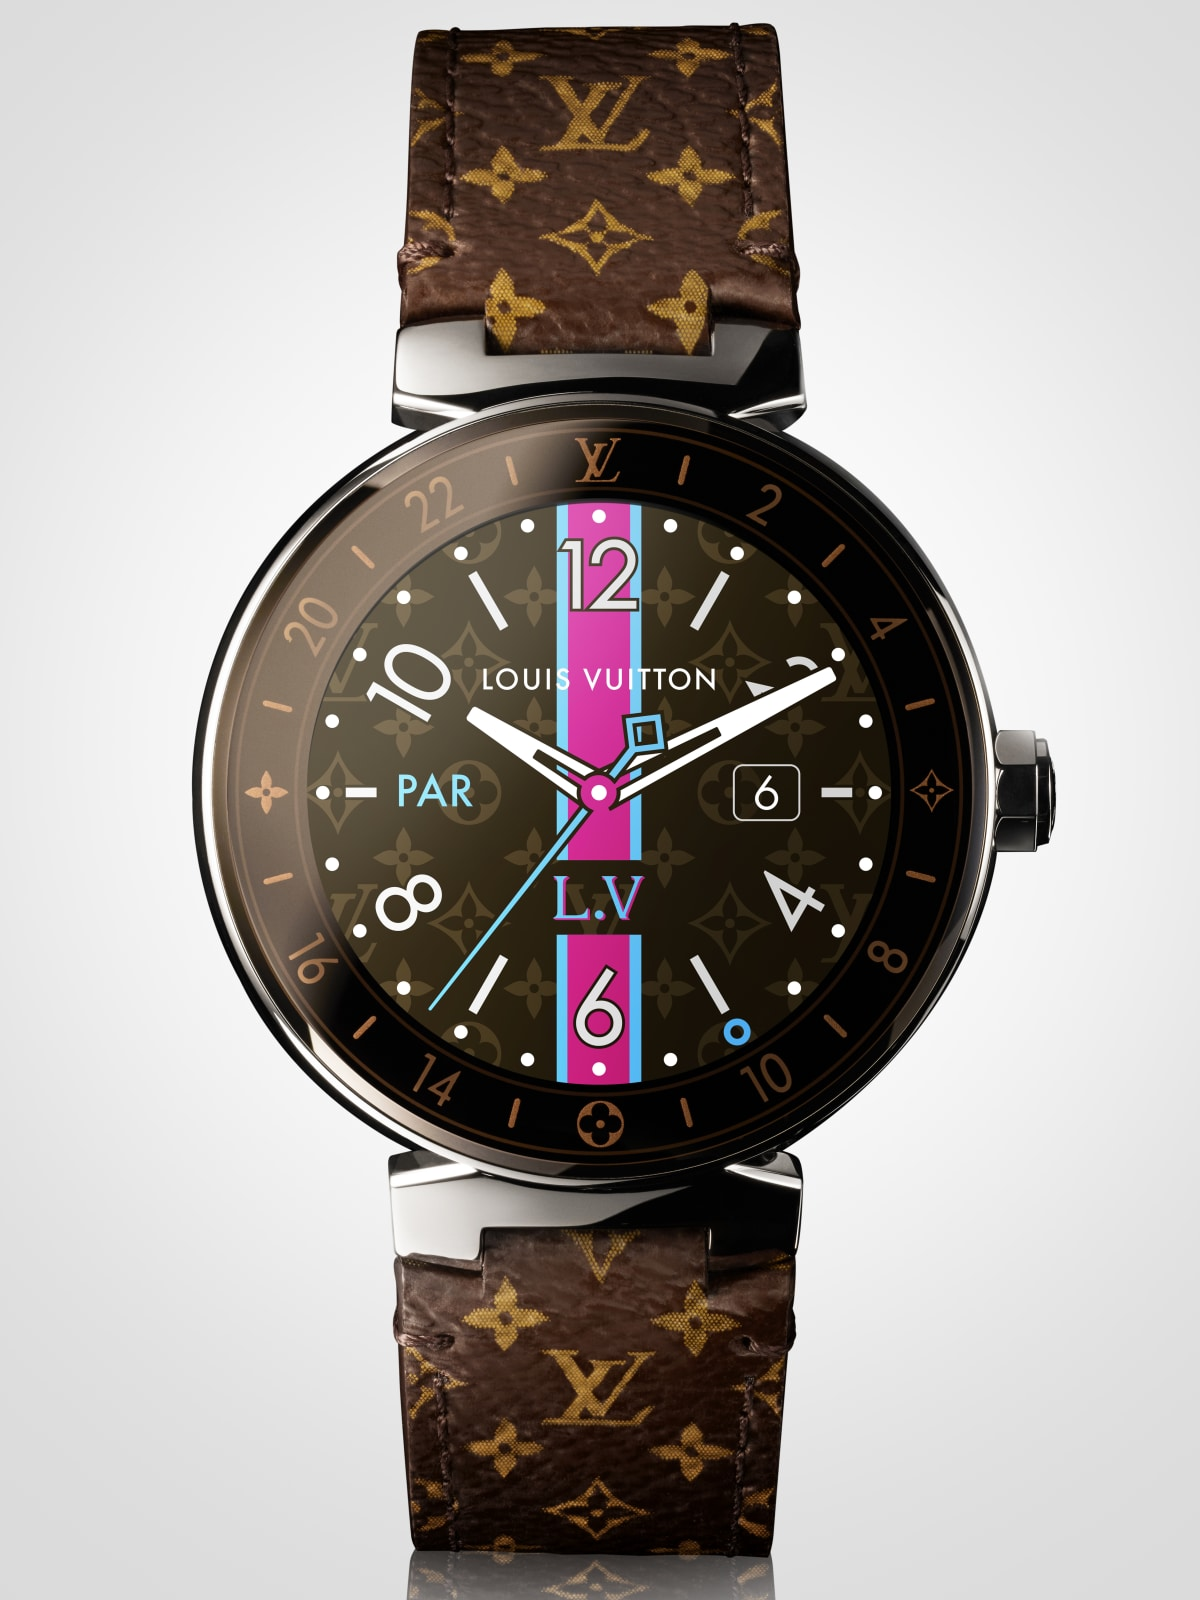 Houston, Louis Vuitton new Tambour Horizon watch, July 2017, Tambour Horizon Monogram Watch